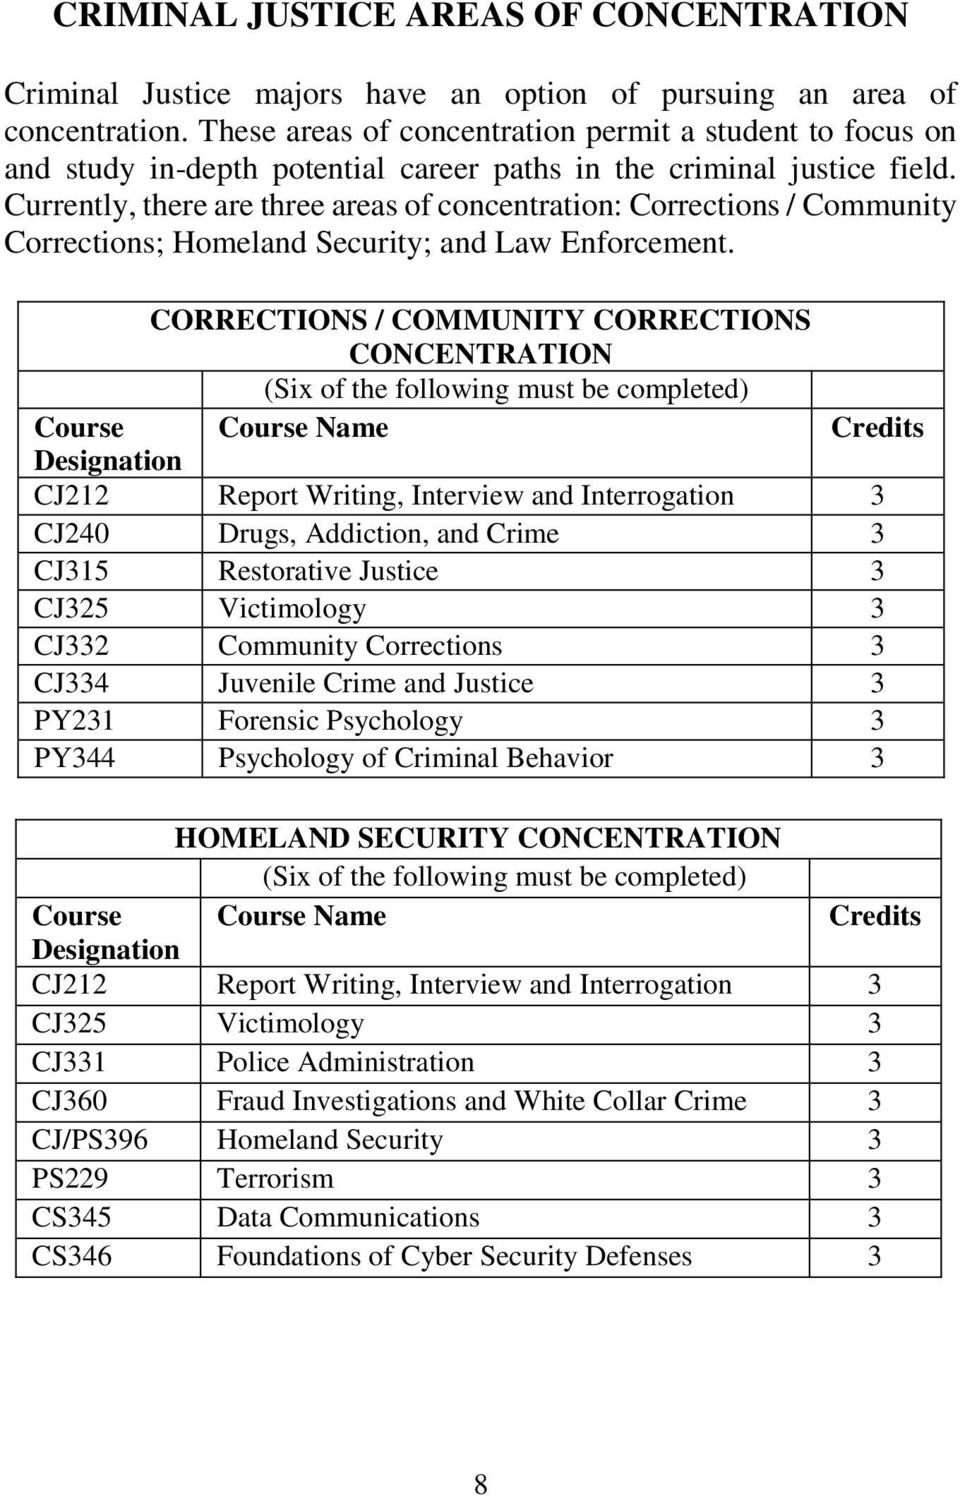 Currently, there are three areas of concentration: Corrections / Community Corrections; Homeland Security; and Law Enforcement.